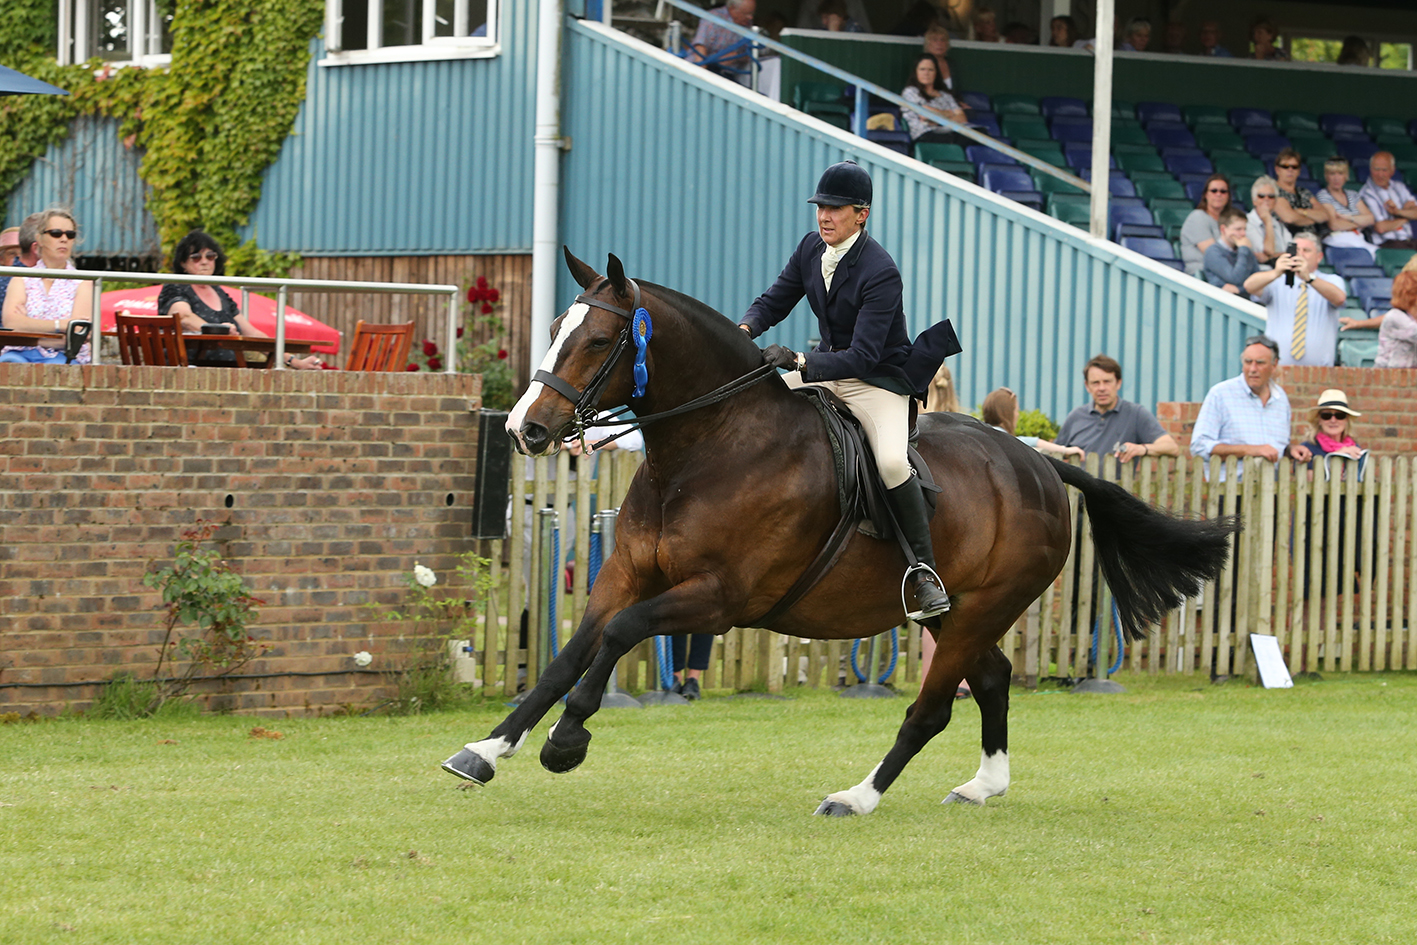 Jayne Ross photo by Julian Portch - Perfecting Your Show Ring Gallop with Jayne Ross